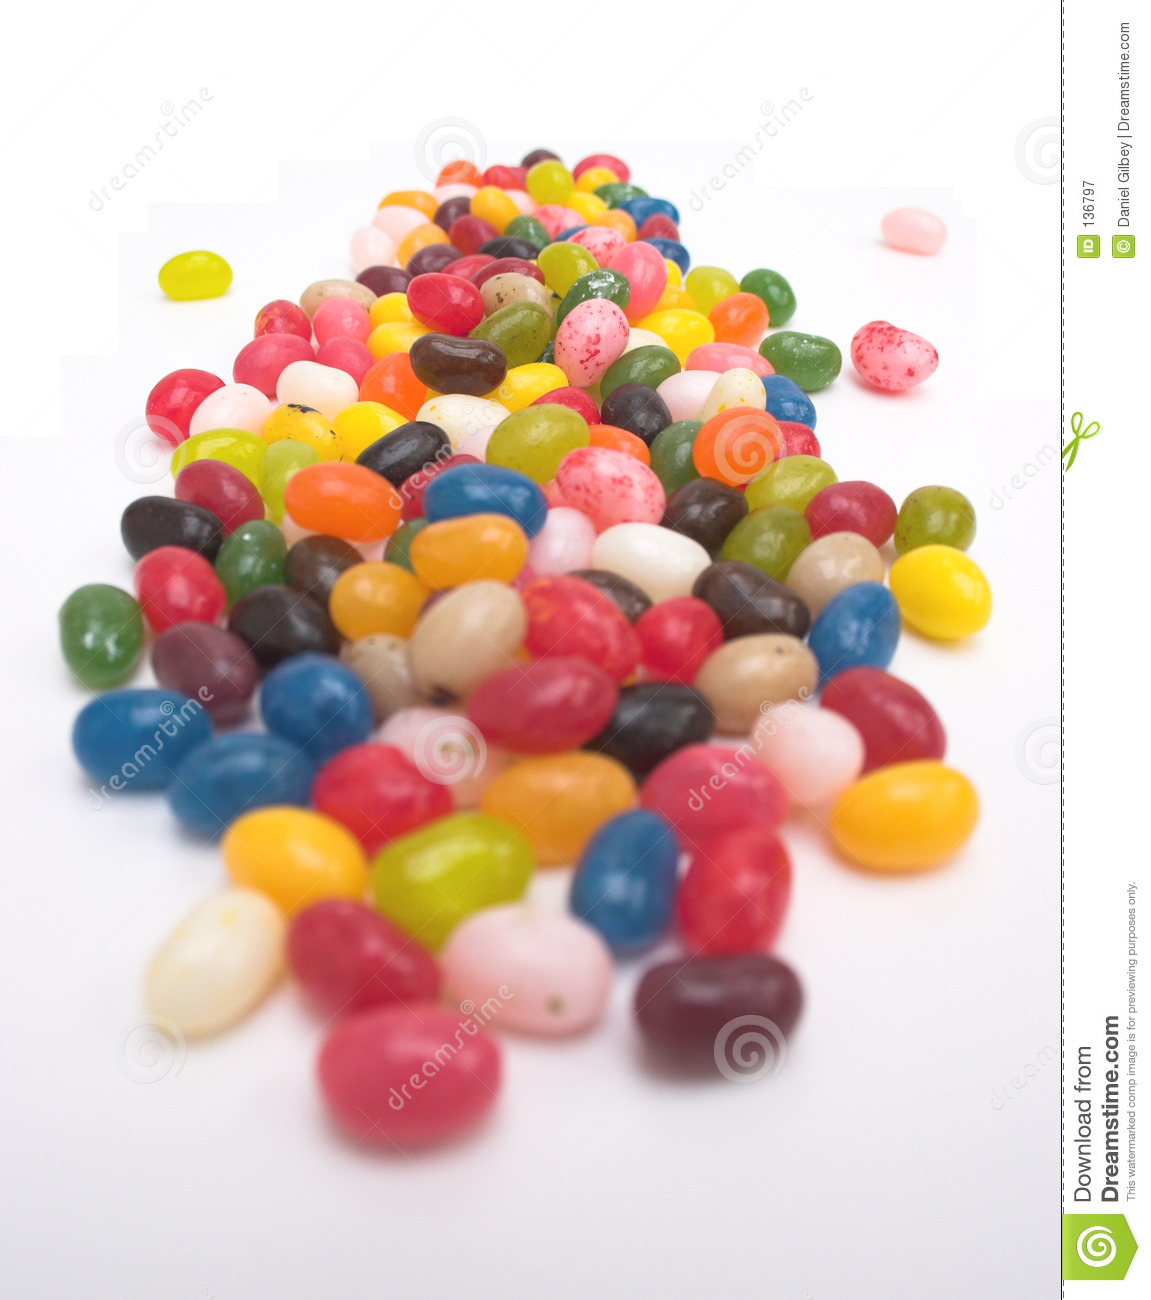 Candy, candy, CANDY!!!